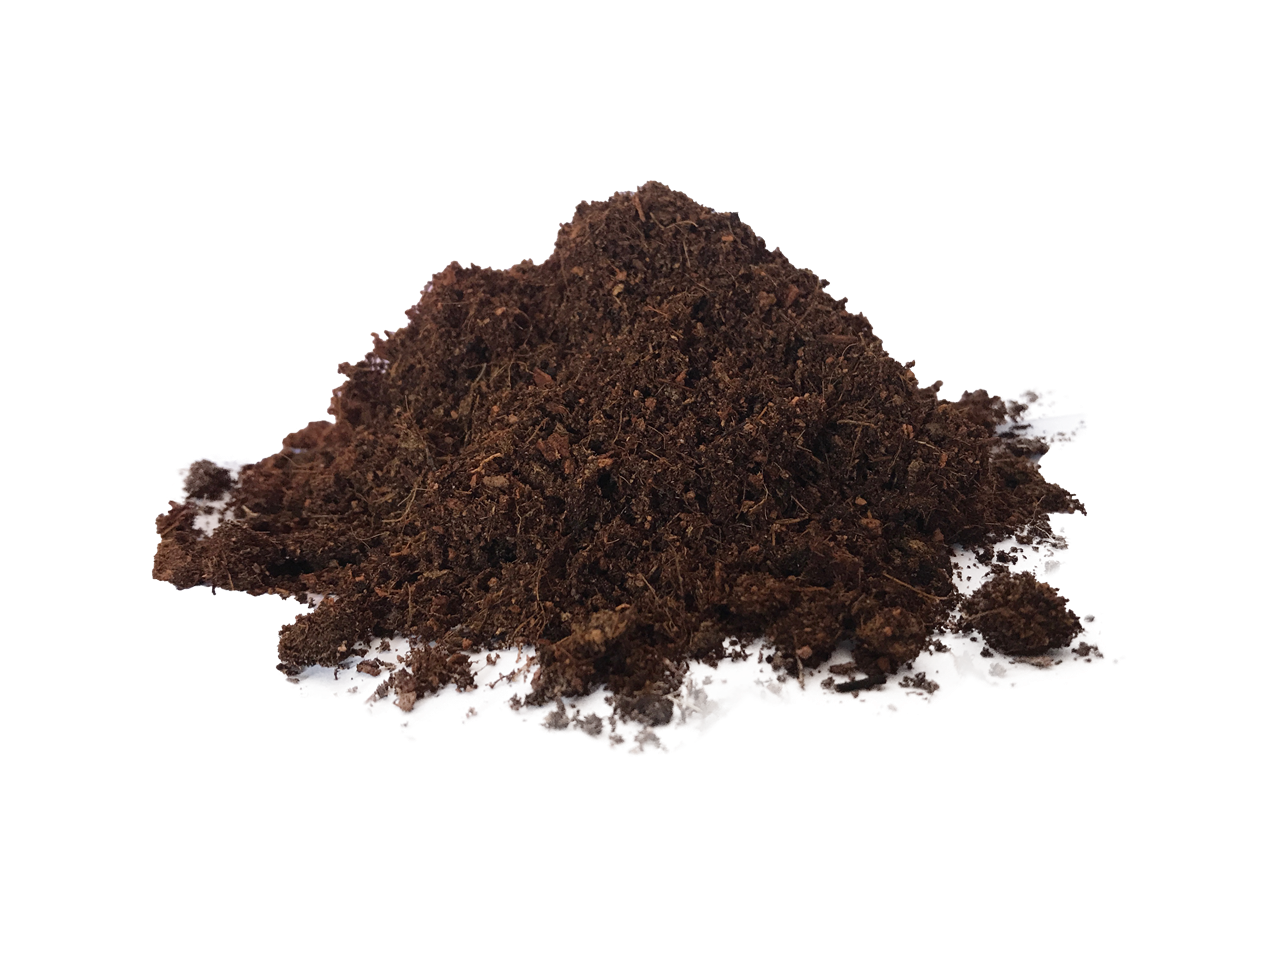 soil png transparent images #37496